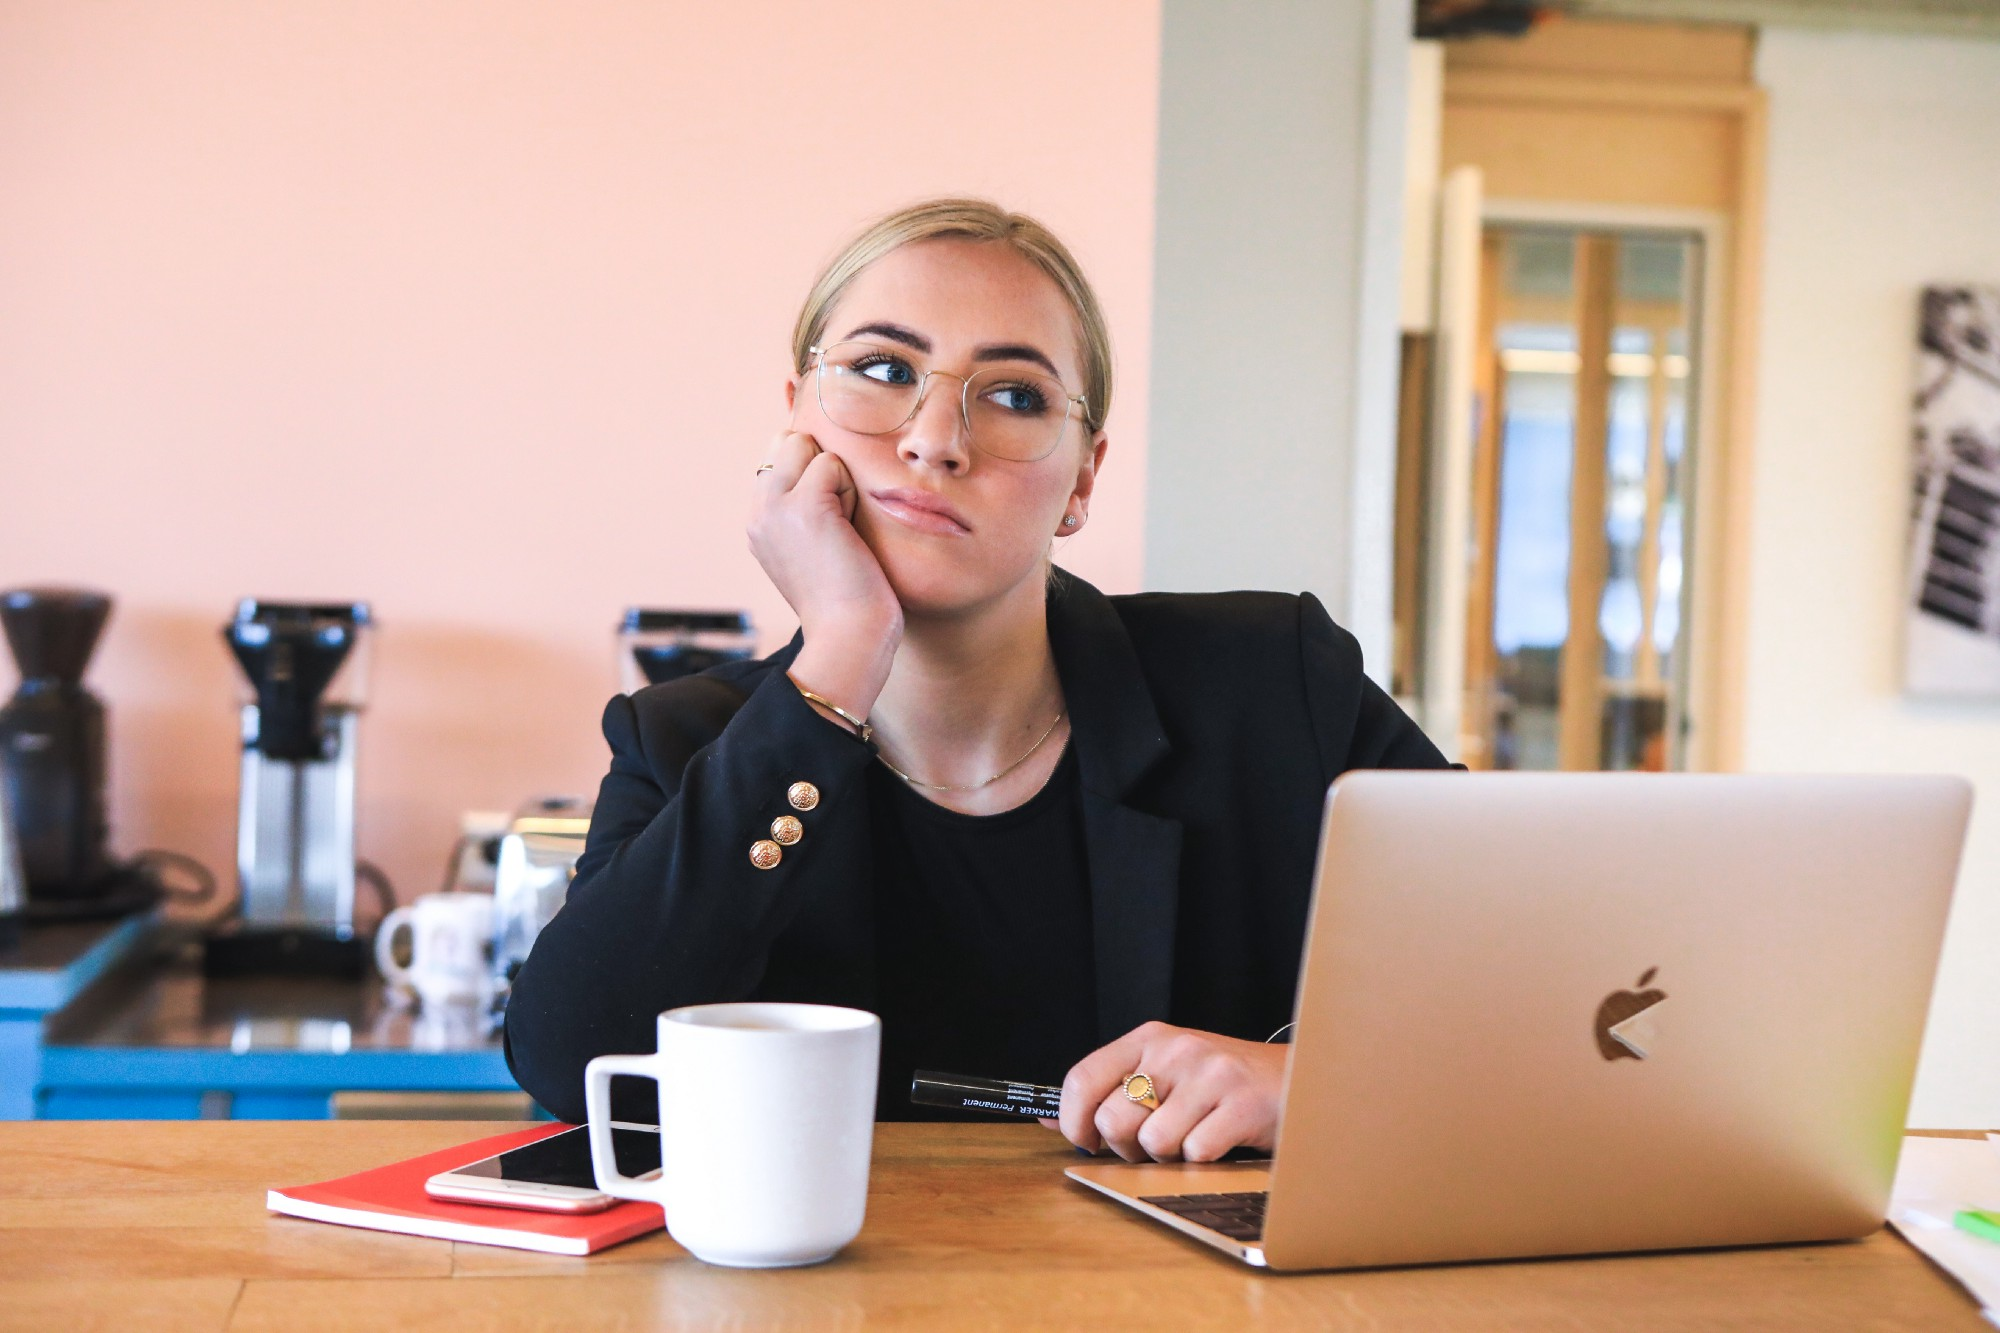 woman with glasses and pantsuit at table with coffee and laptop, head leaning on hand, thinking look.